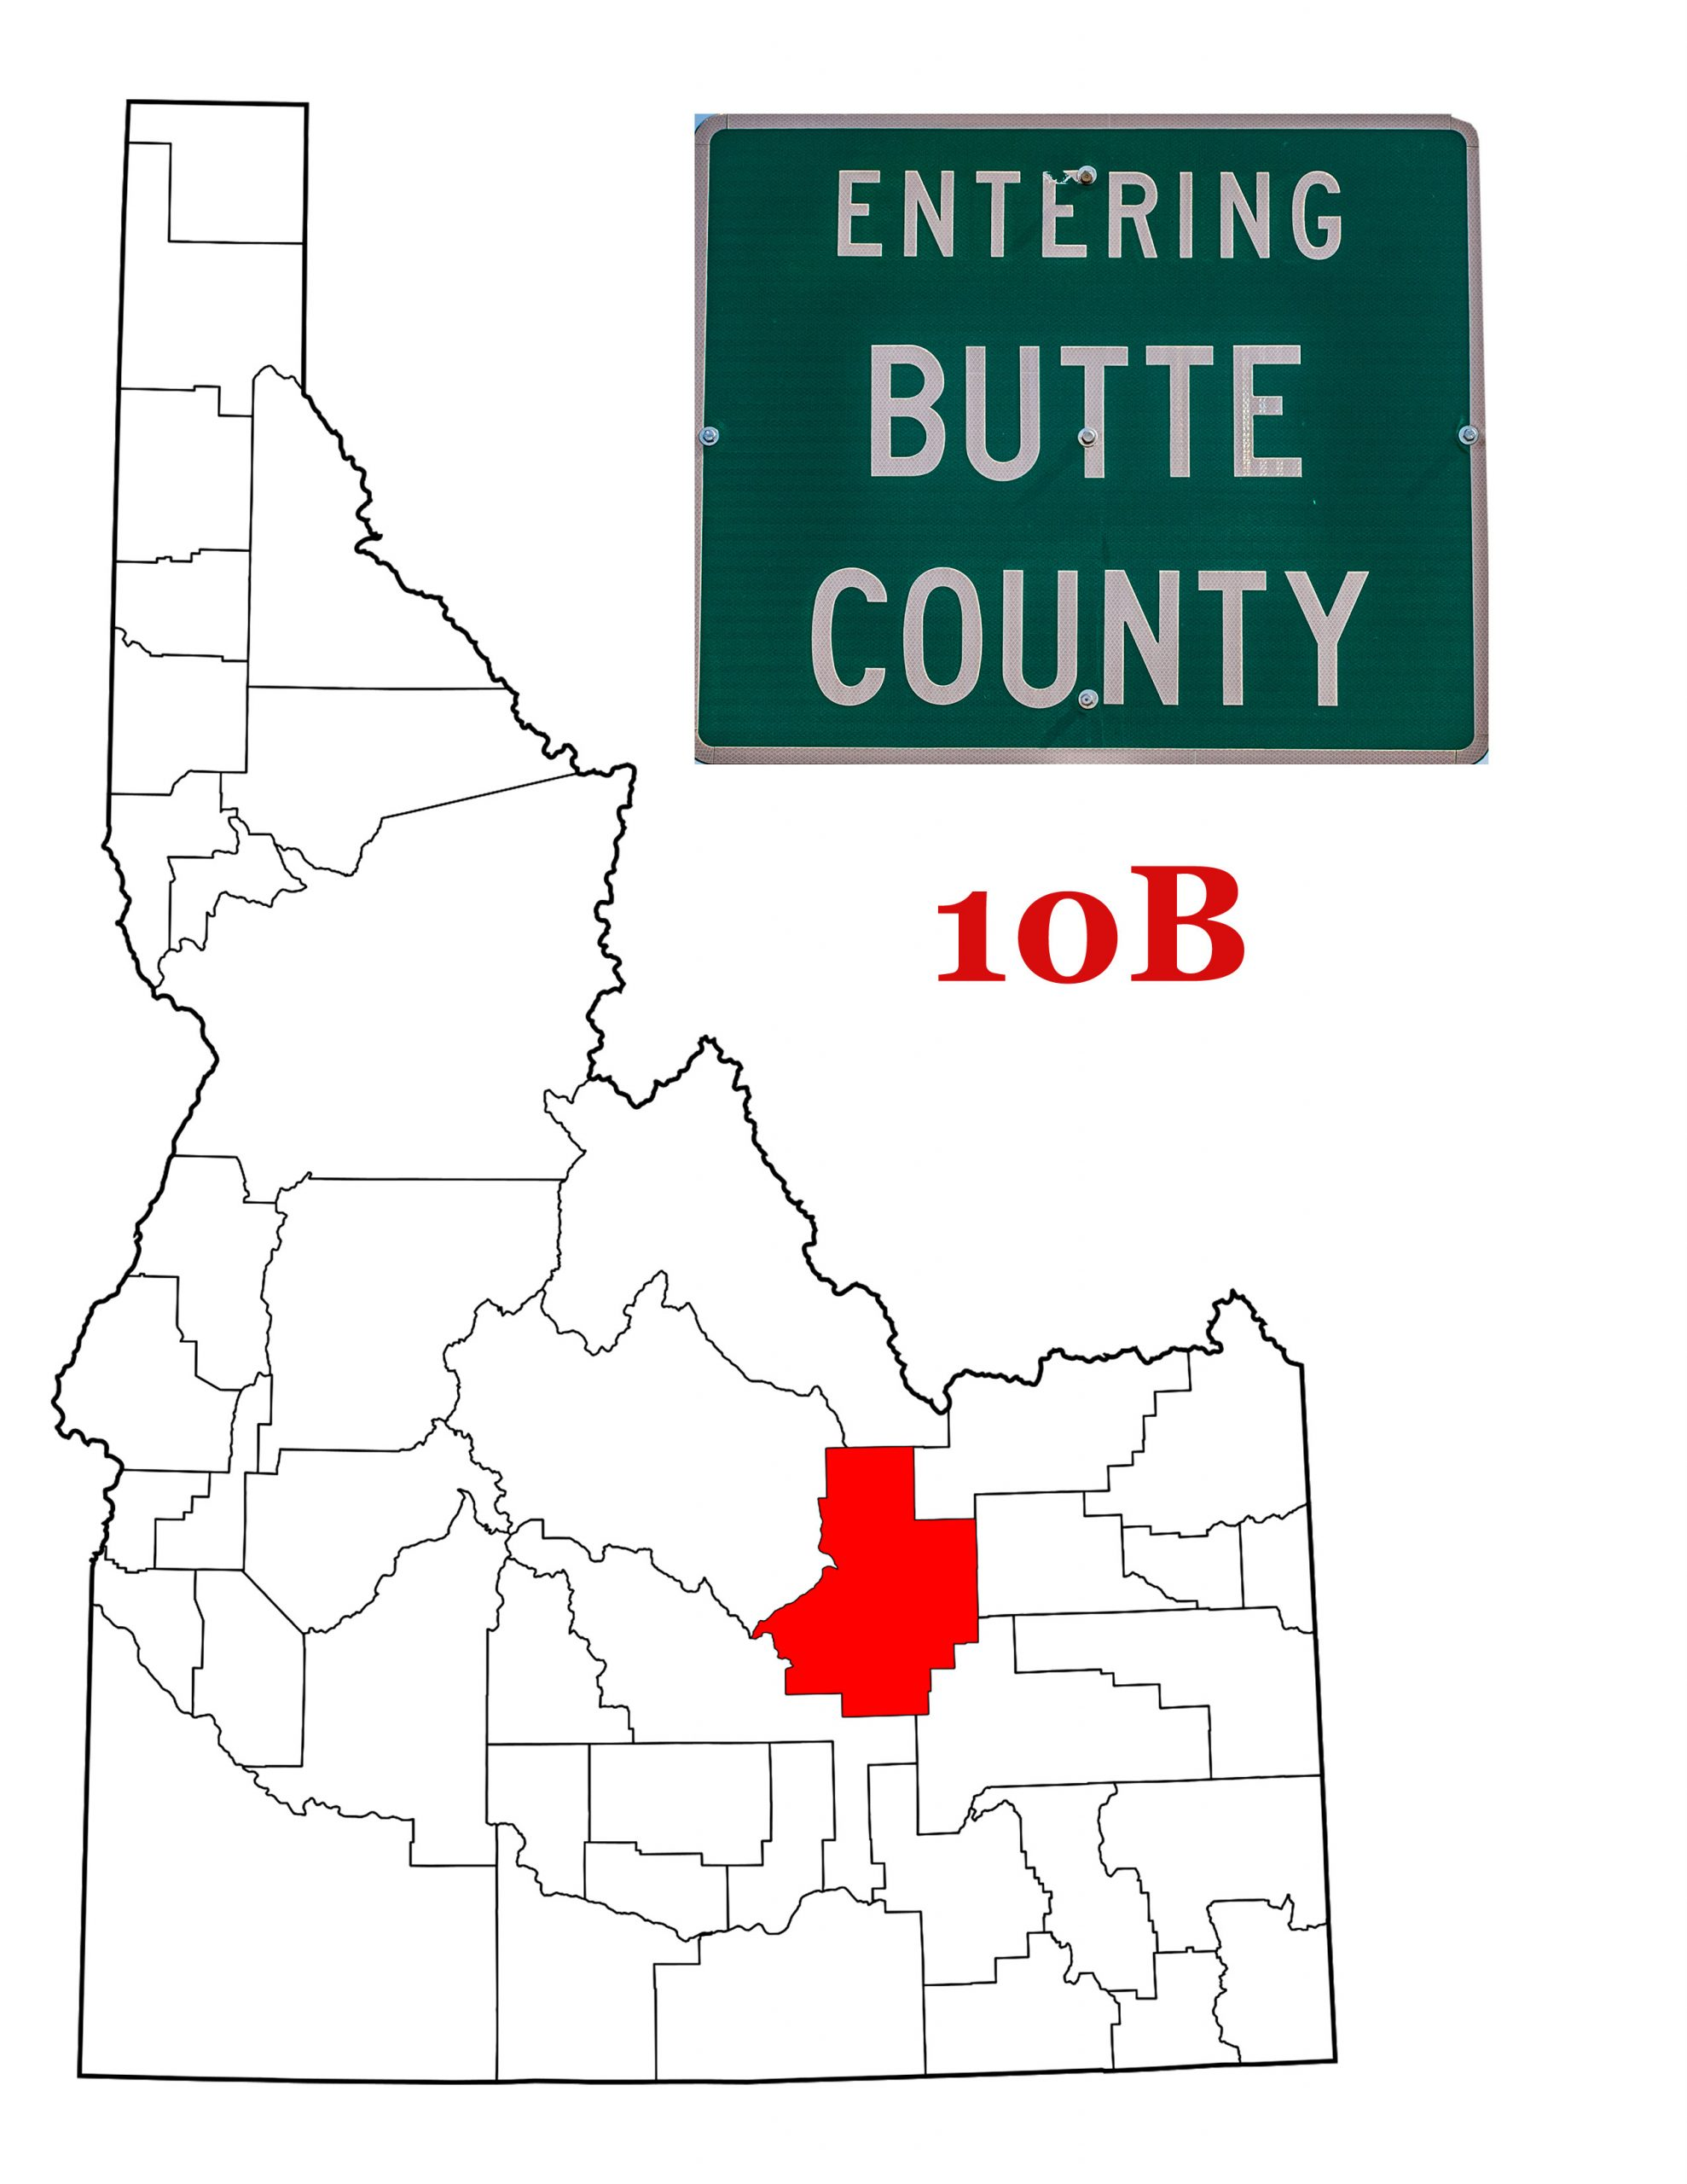 A map of Idaho showing Butte County in Red, along with the Butte County Sign.